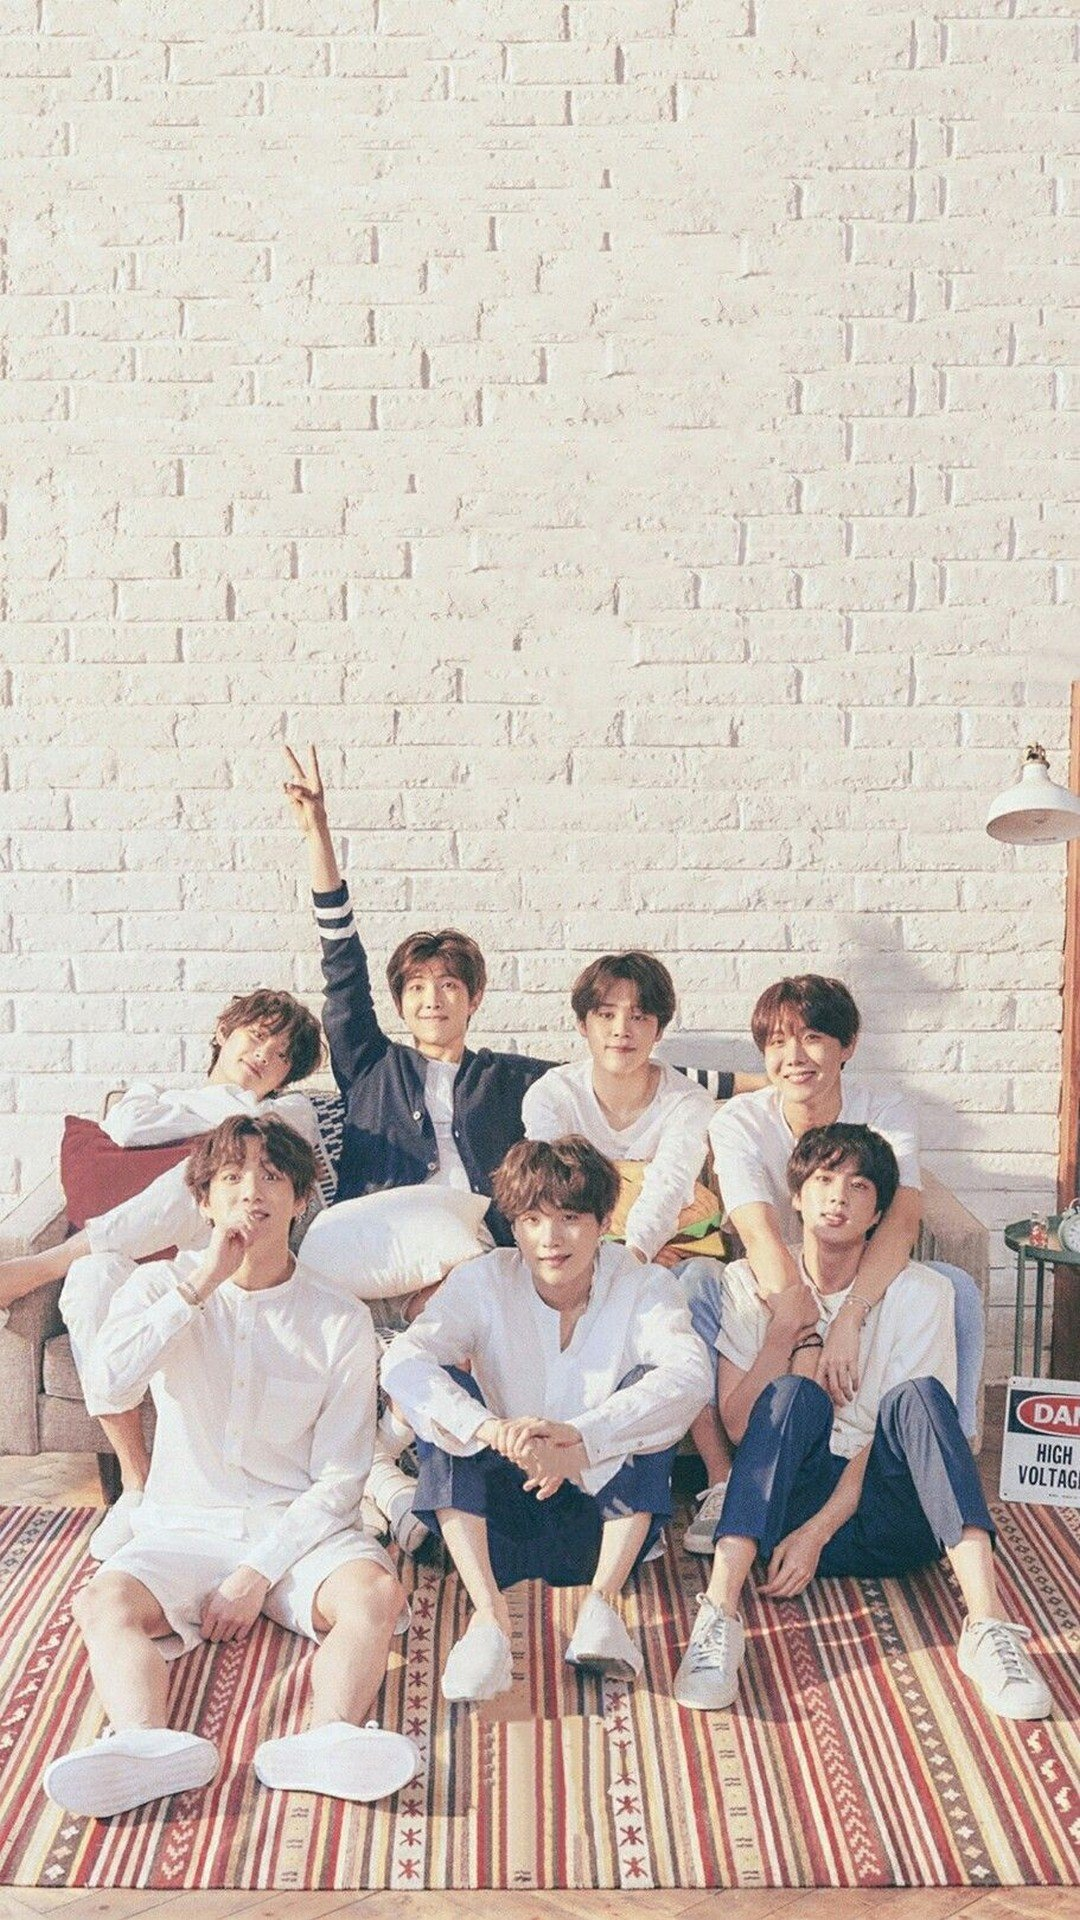 BTS Android Wallpaper   2020 Android Wallpapers 1080x1920